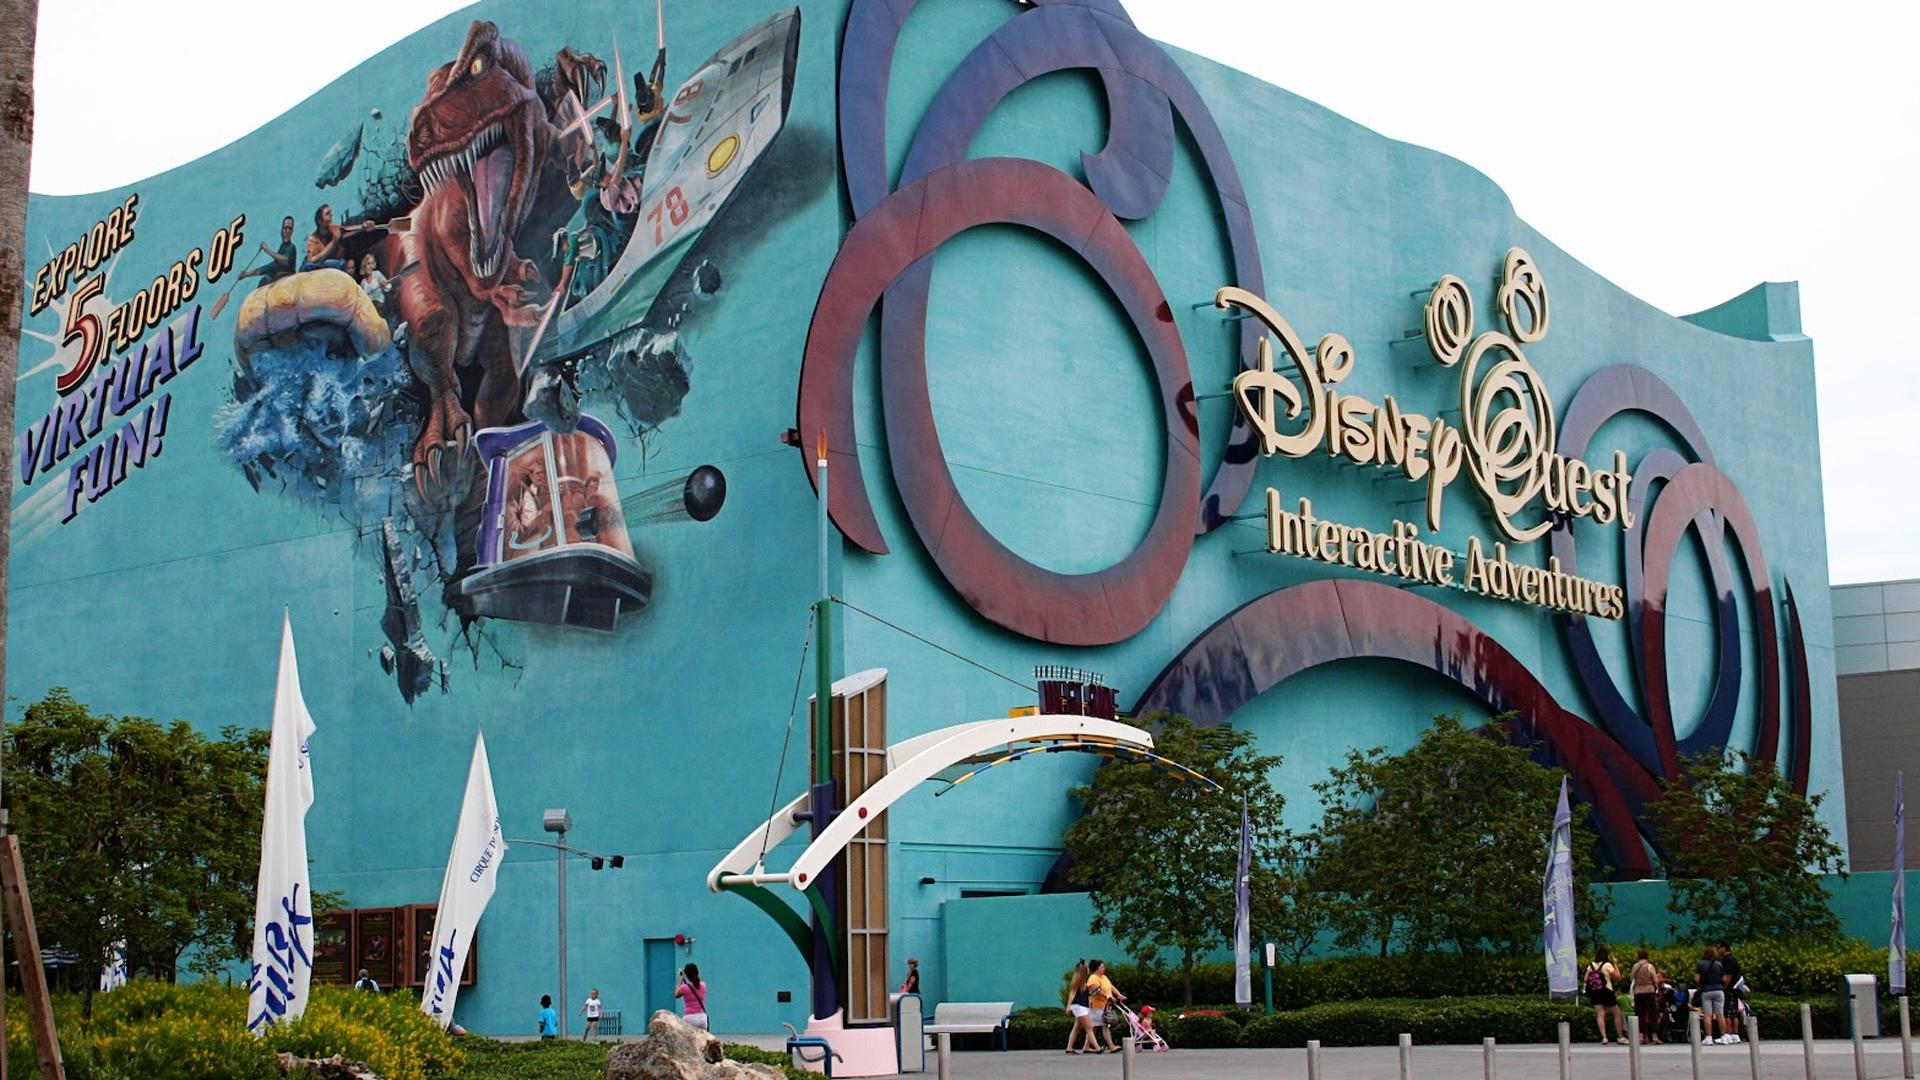 DisneyQuest remaining open into 2017; no updates on NBA attraction